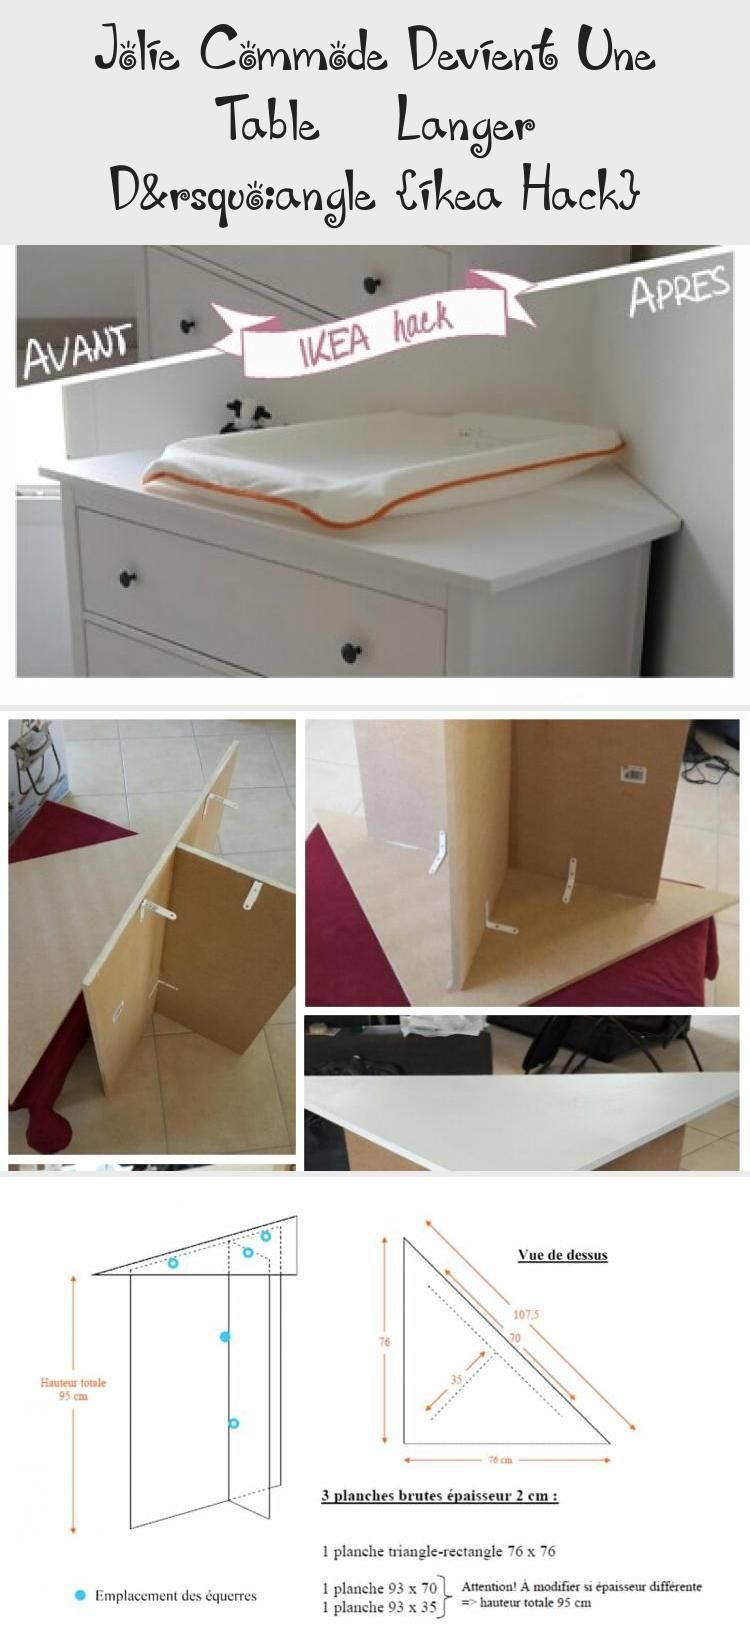 Jolie Commode Devient Une Table A Langer D Angle Ikea Hack Ikea Hack Ikea Table